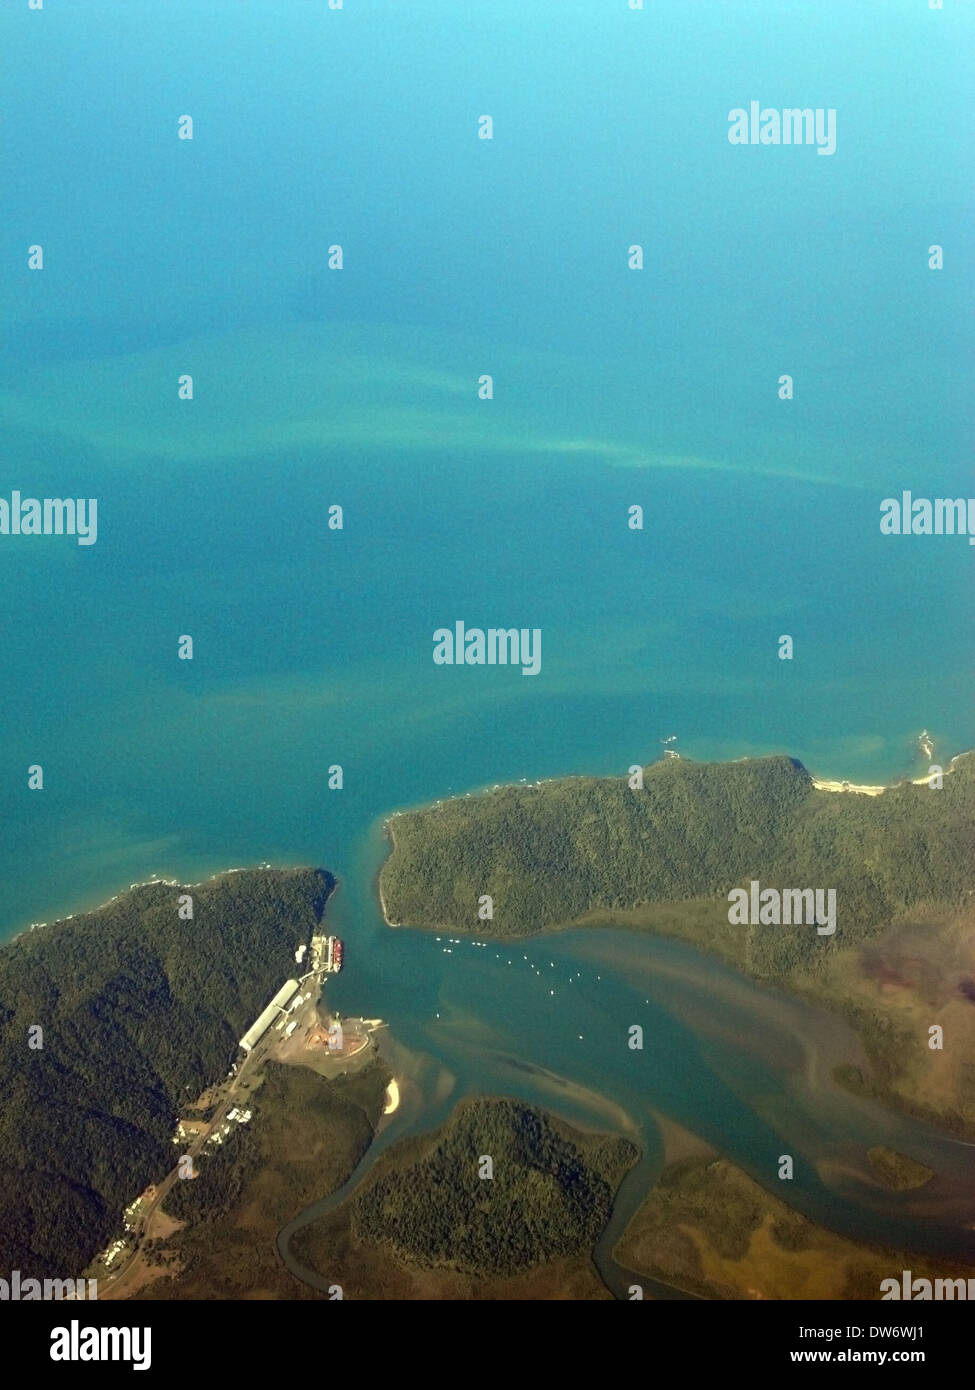 Aerial view of Mourilyan harbour, near Innisfail, Queensland, Australia - Stock Image